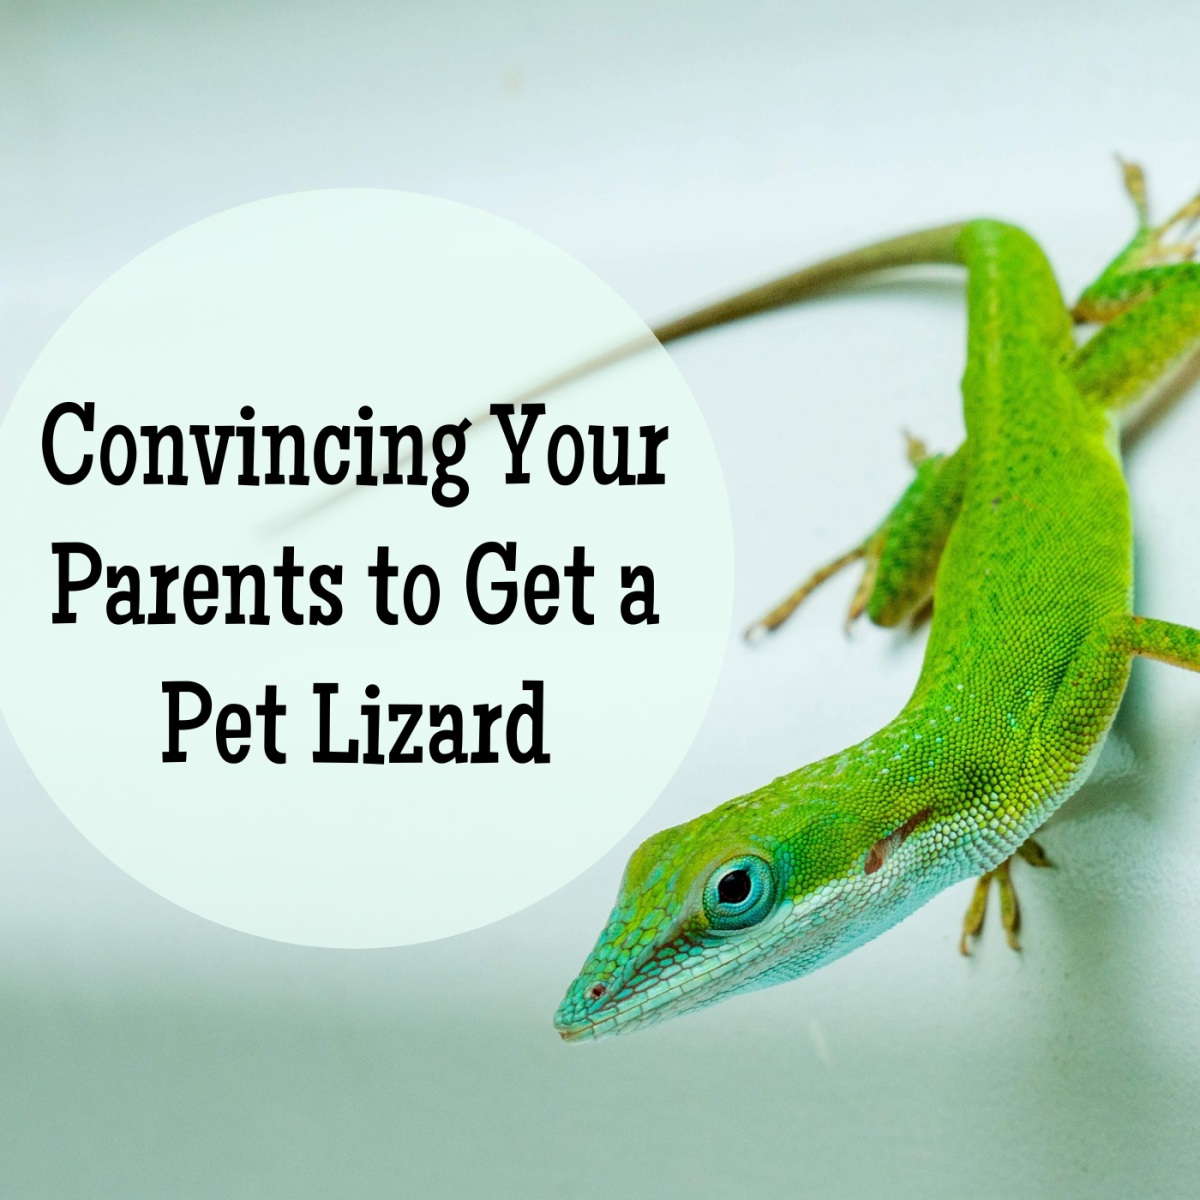 Review some common parental objections to pet lizards and how to answer them in a mature way!